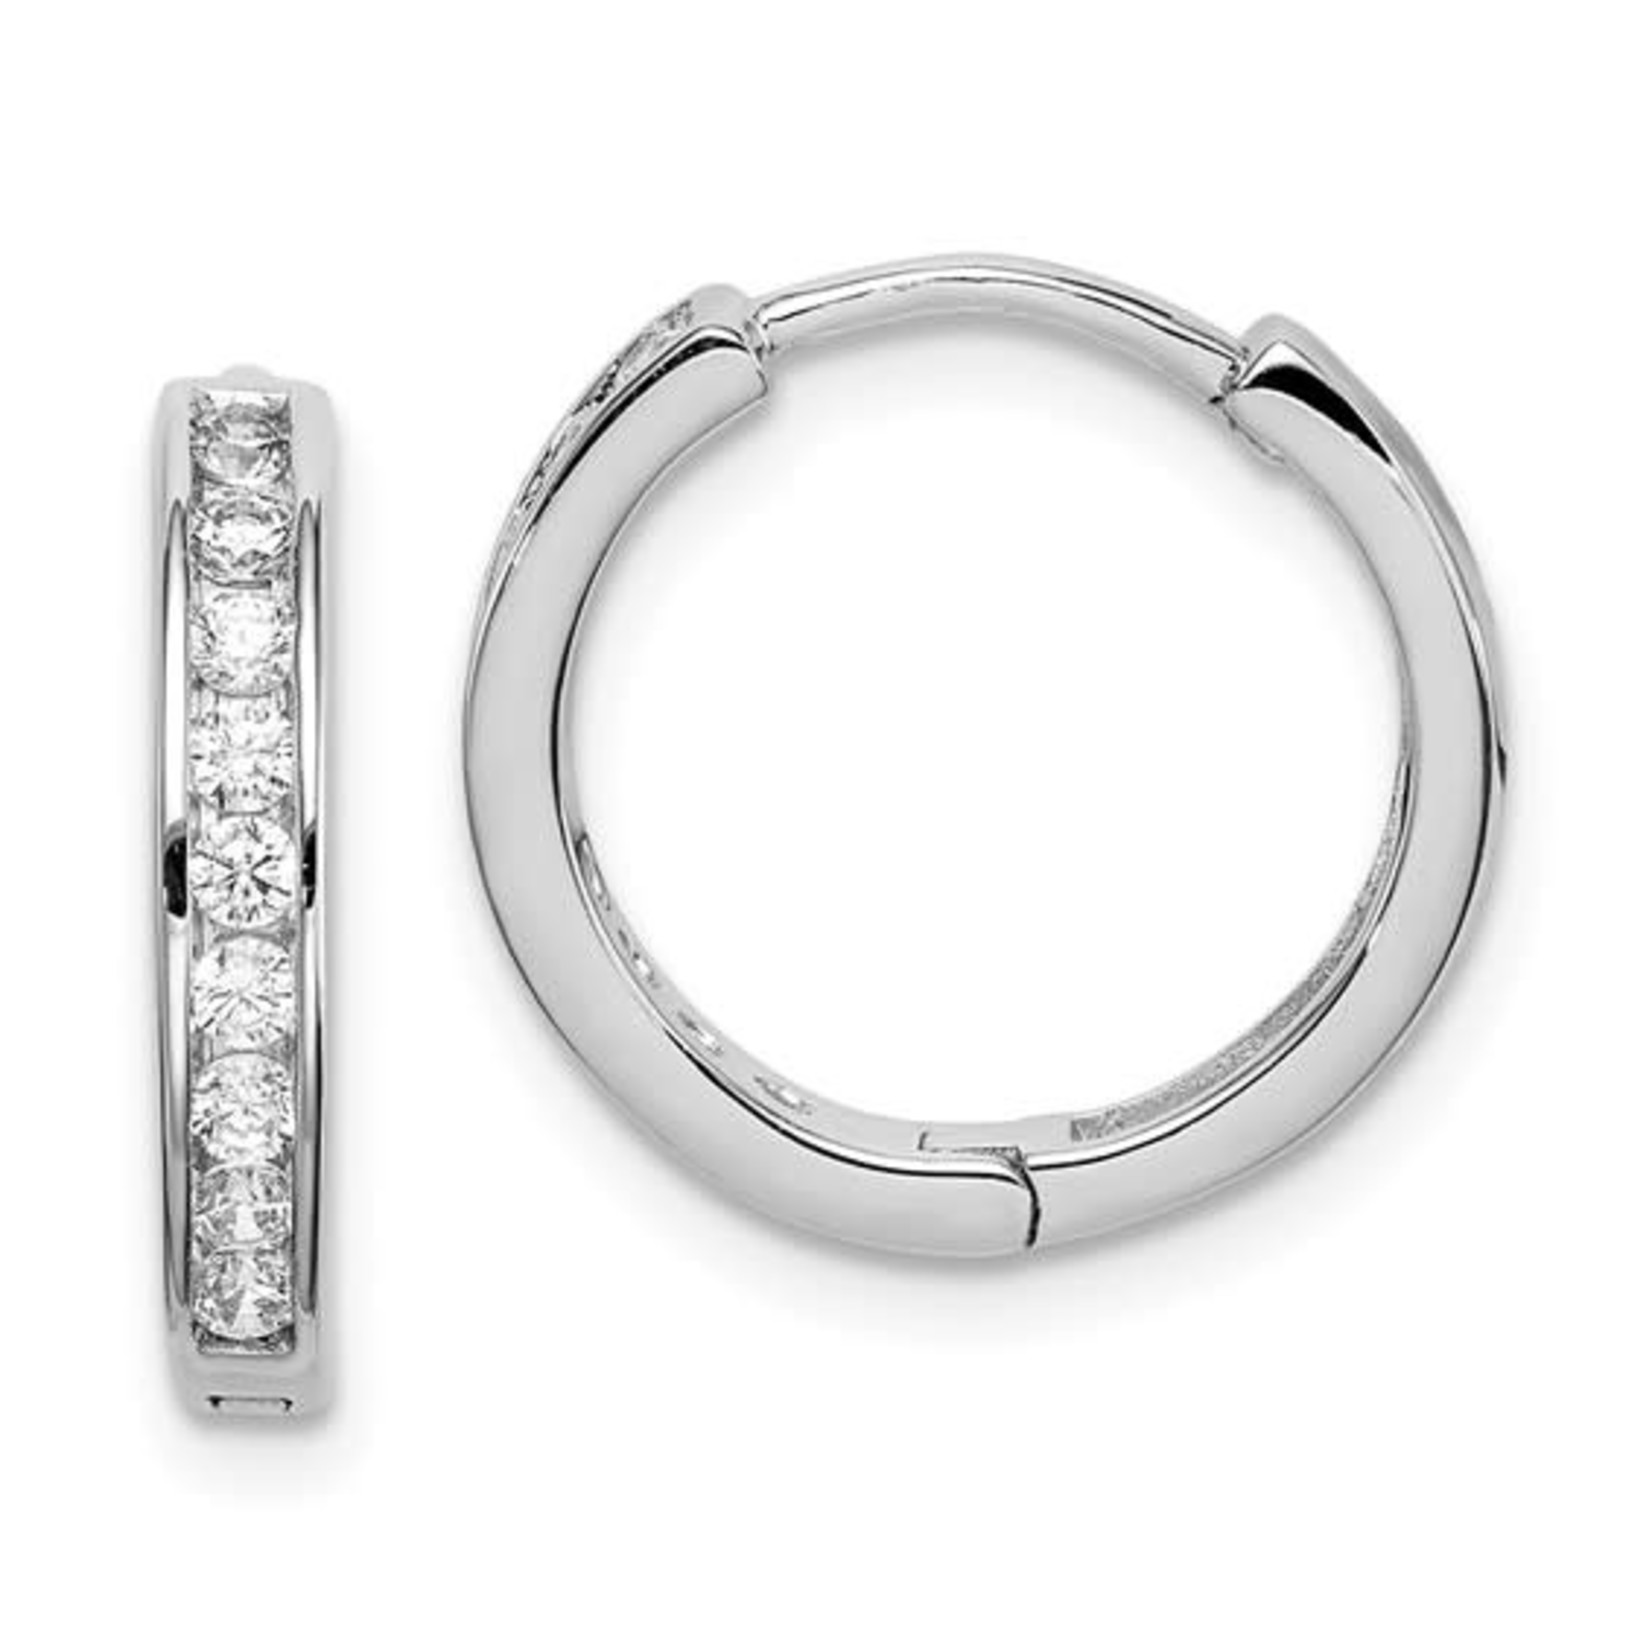 This Is Life Line Up The Cz's Sterling Silver Hoop Earrings